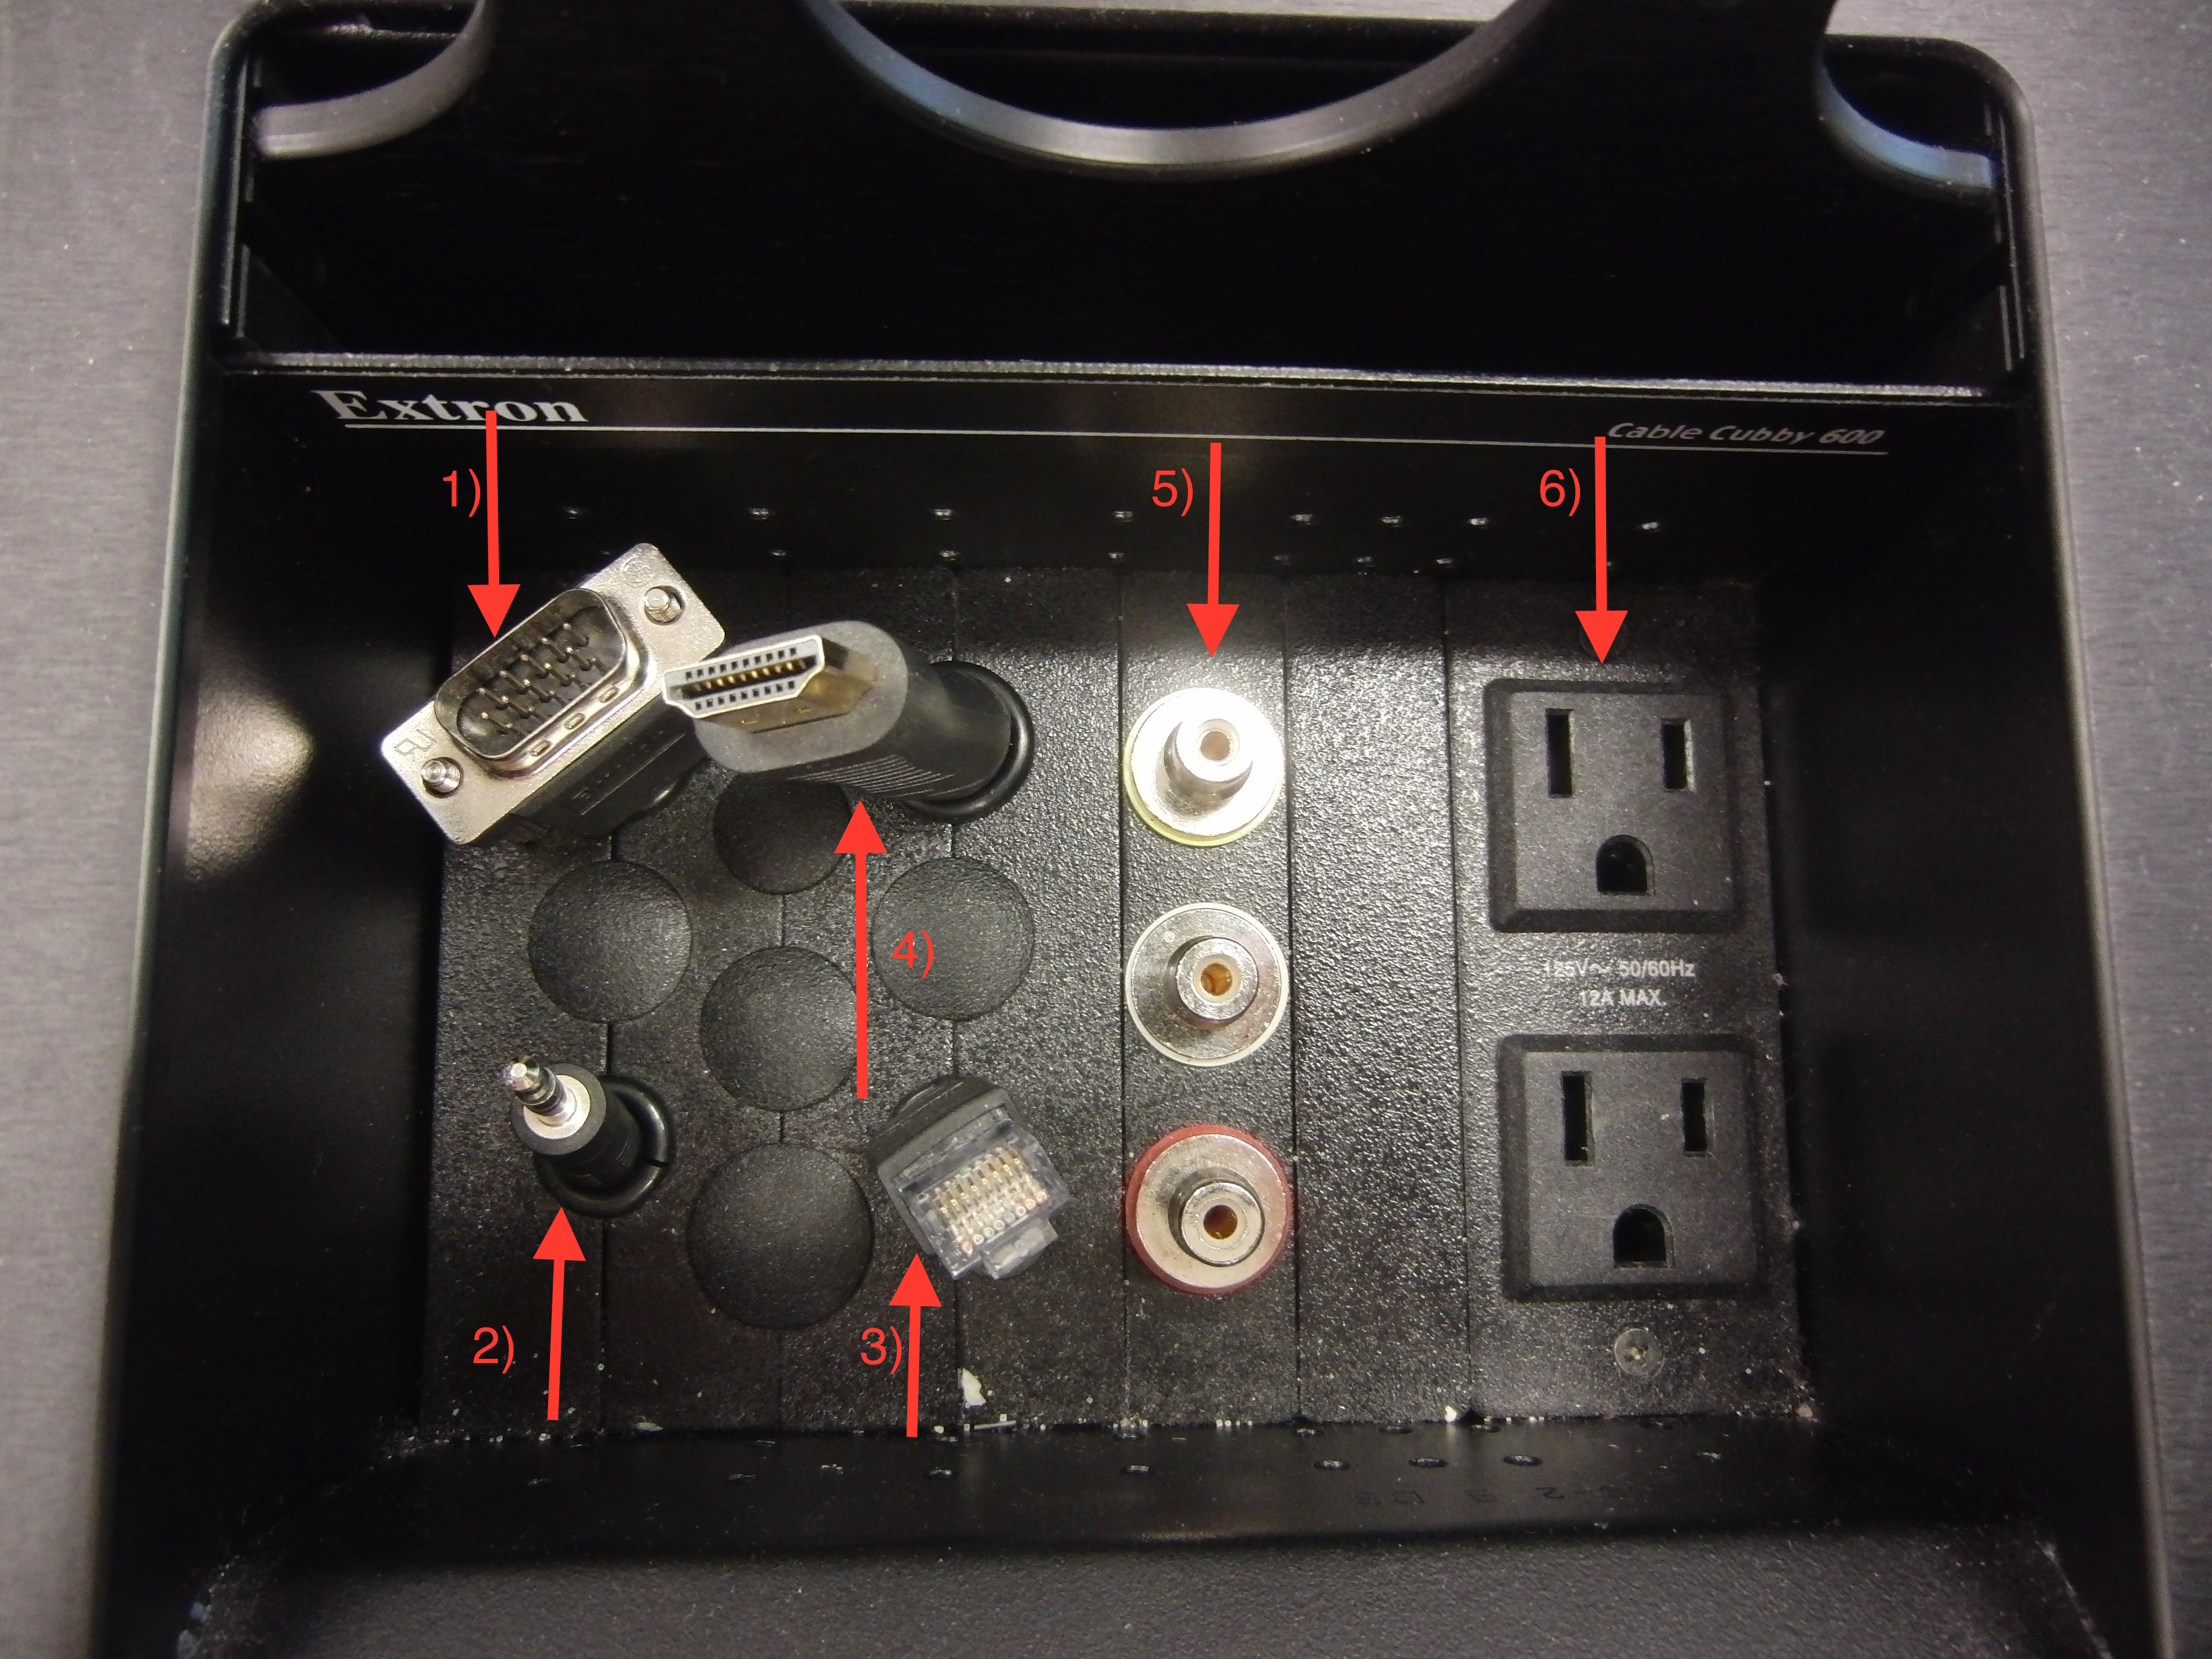 Photo of the cable cubby located at the instructor's station with the vga cable, audio cable, hdmi cable, network cable, inputs, and power outlets identified by number